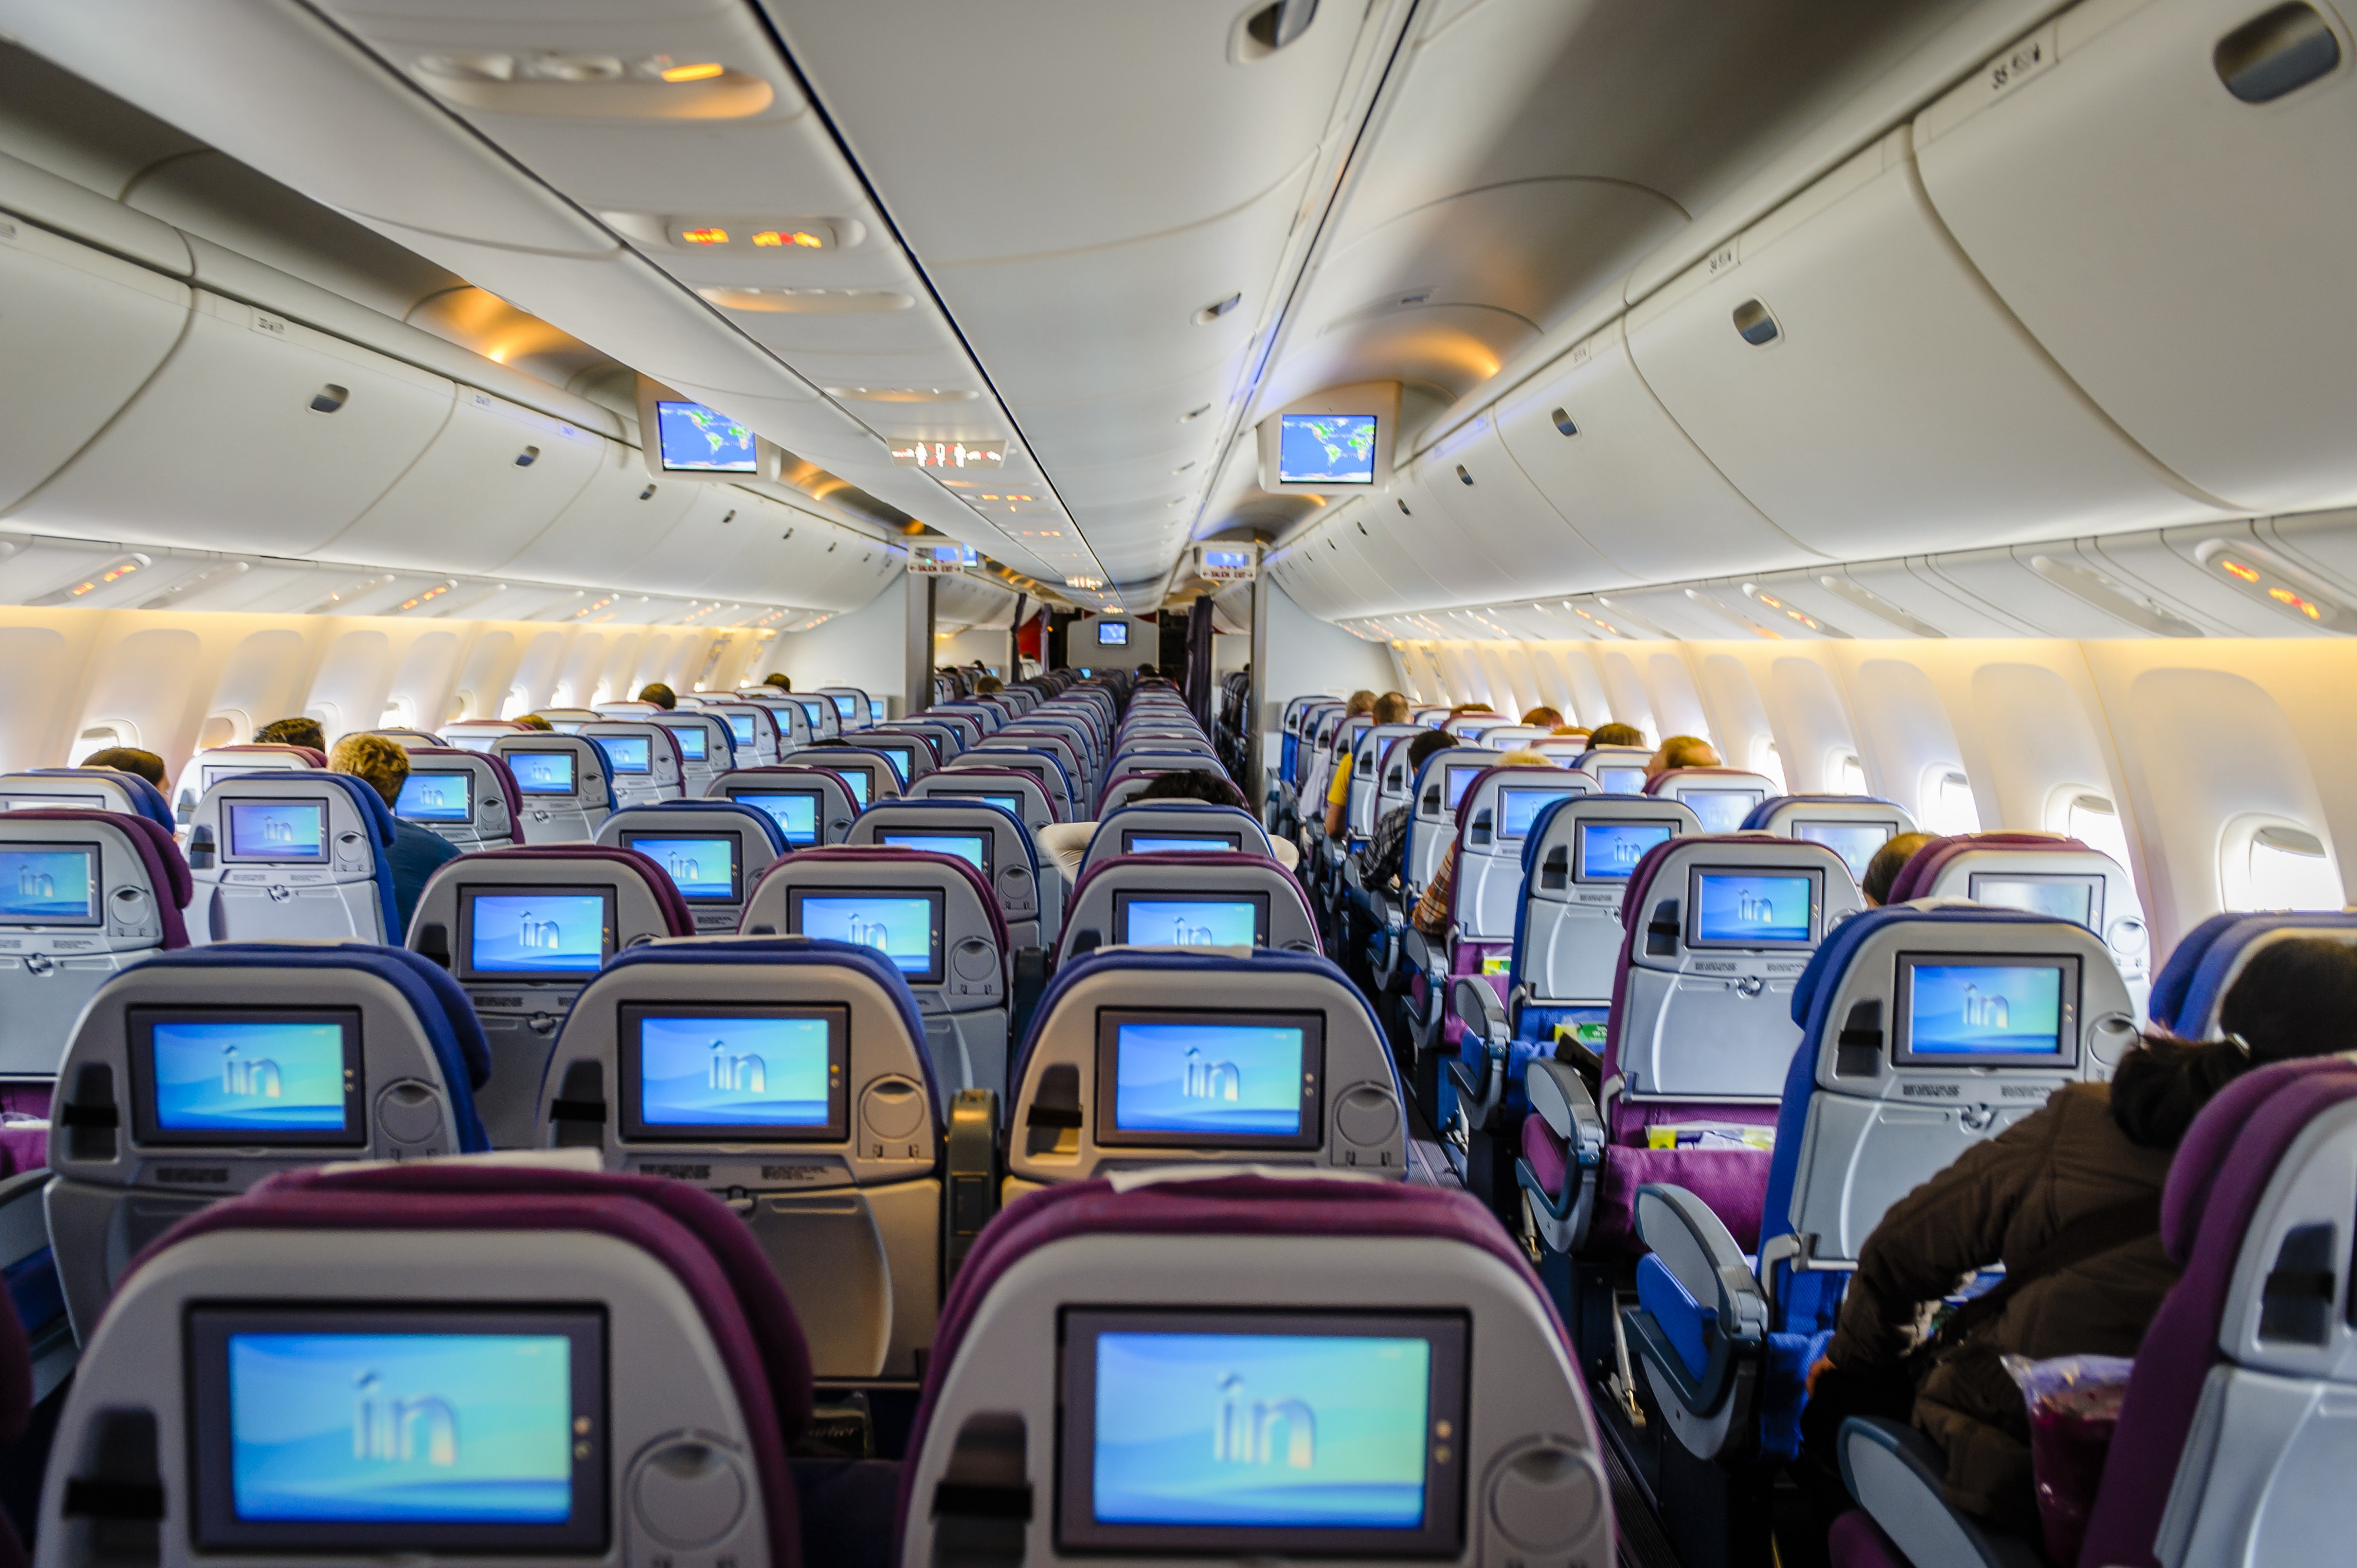 An aircraft cabin with rows of seats, some of which have people sitting in them, watching the T.V. screen on the back of the seat in front.